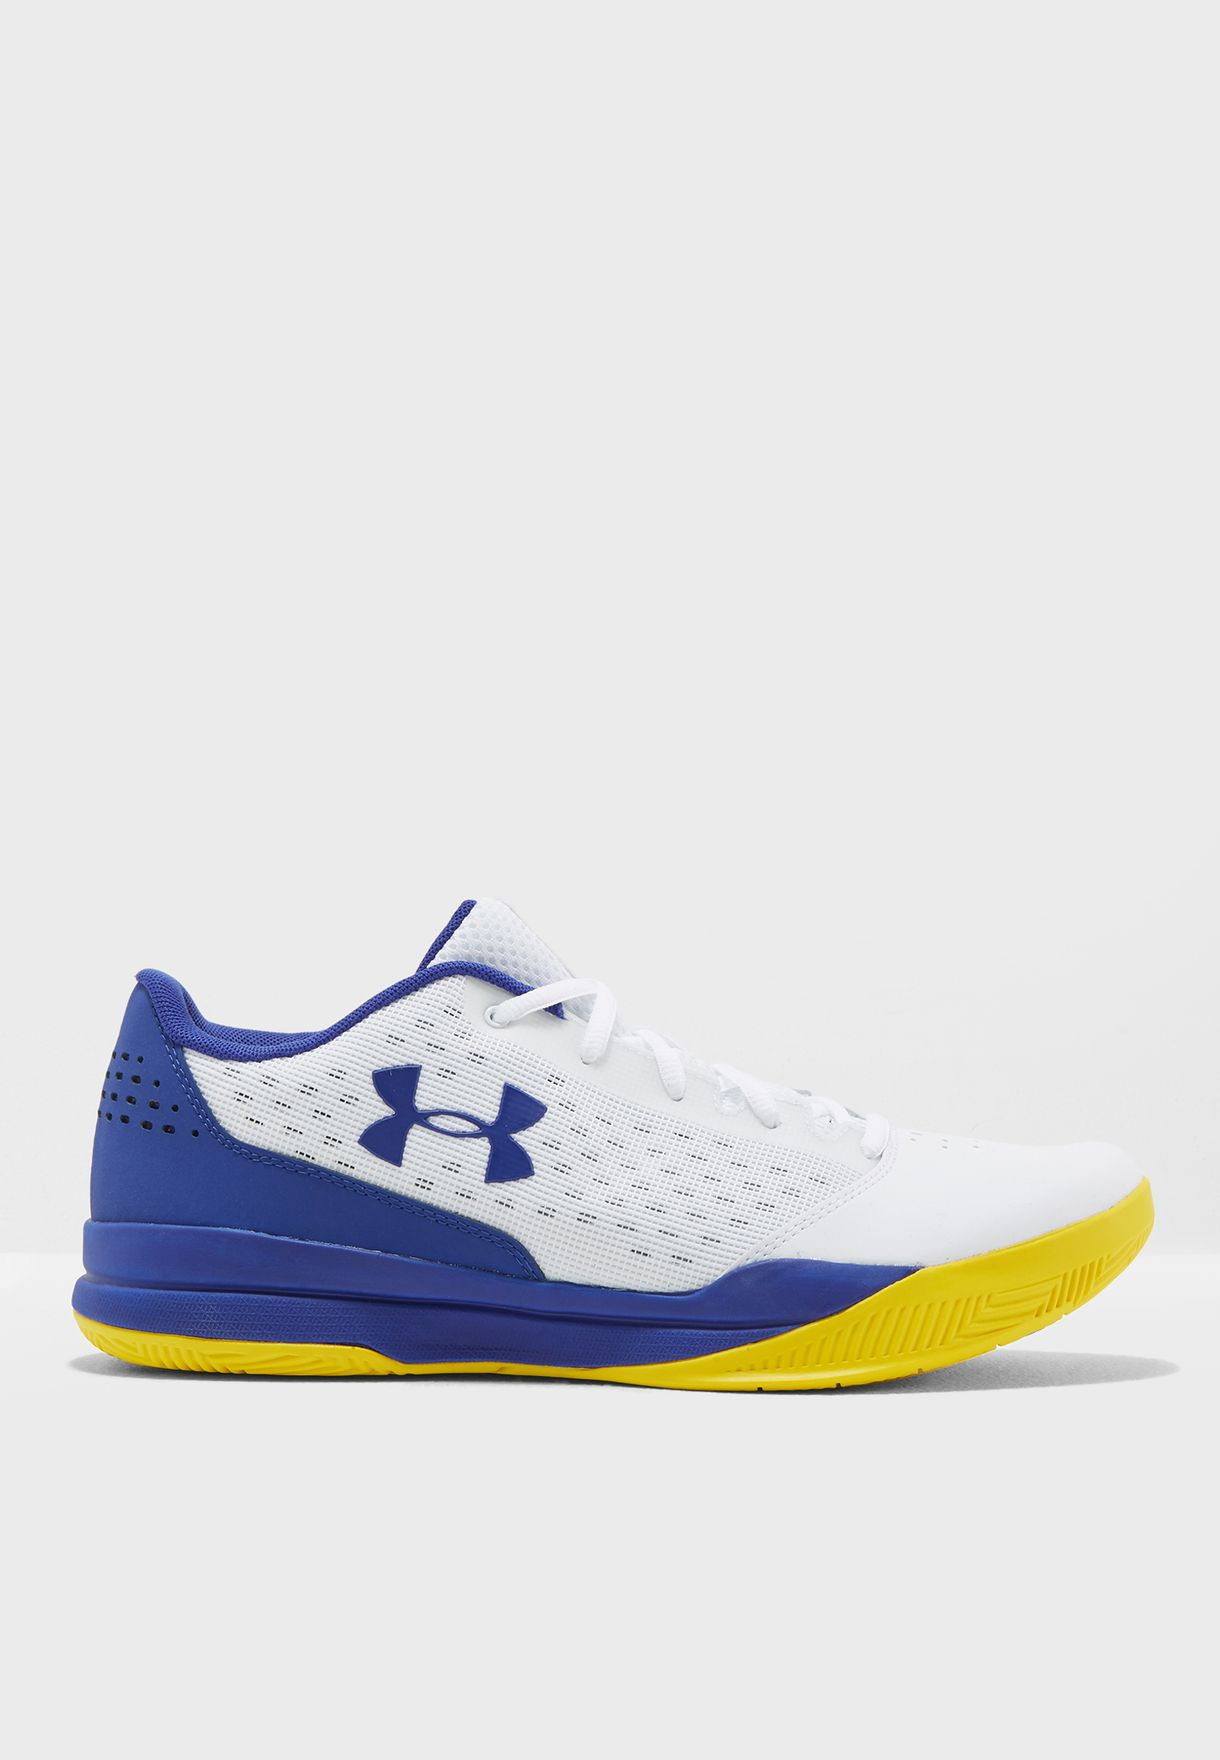 9f83a6473df Shop Under Armour white Jet 2017 Low 3020254-101 for Men in UAE ...